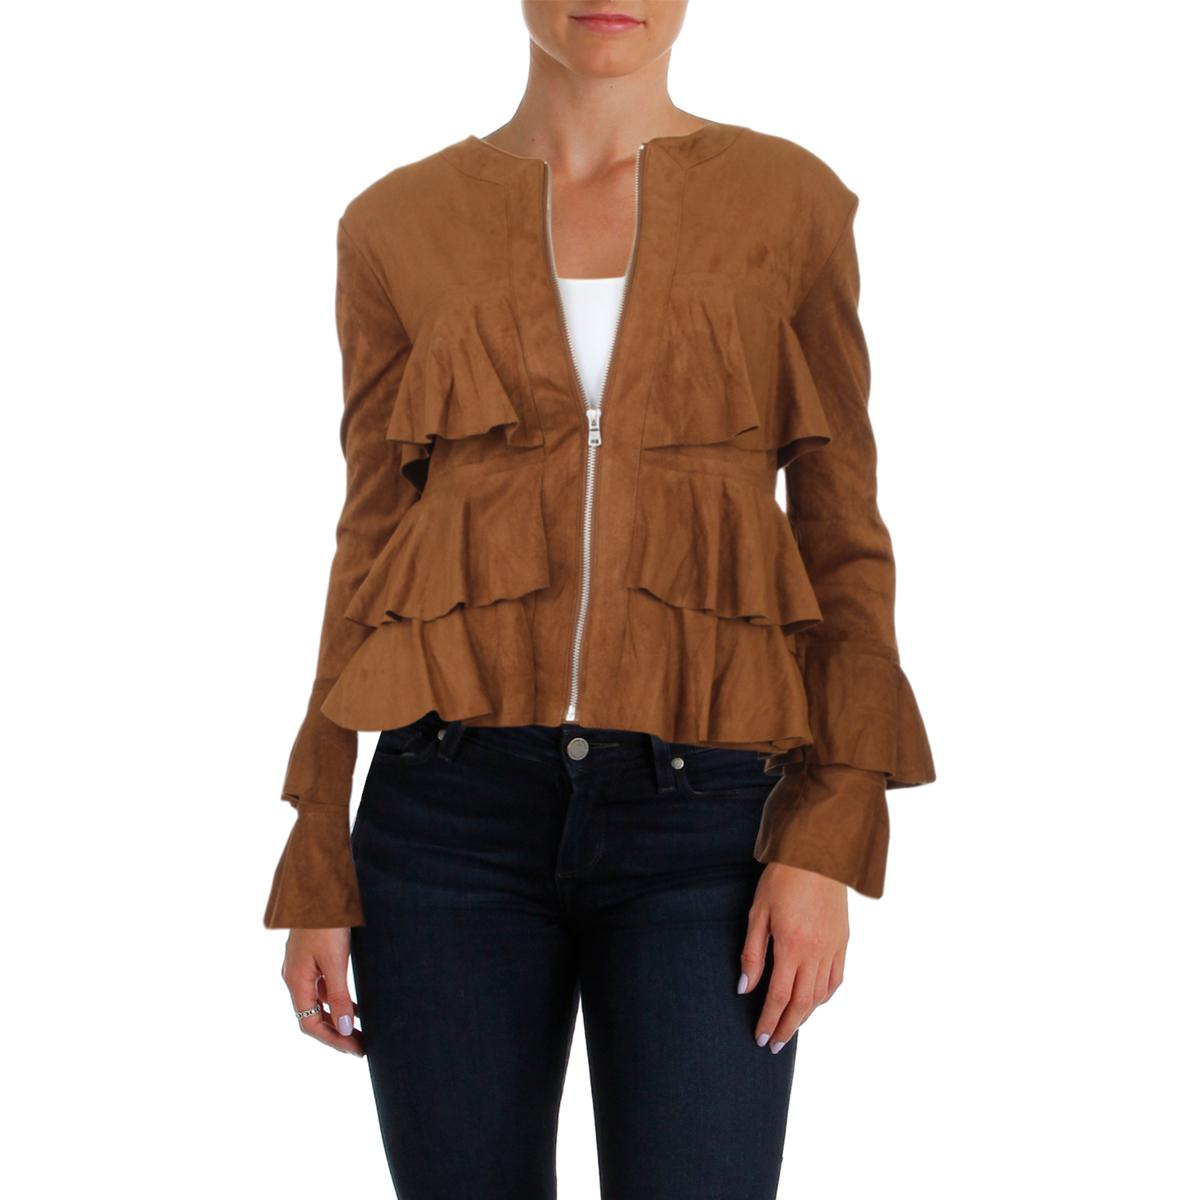 INC-Womens-Fall-Faux-Suede-Fashion-Cropped-Jacket-Outerwear-BHFO-0210